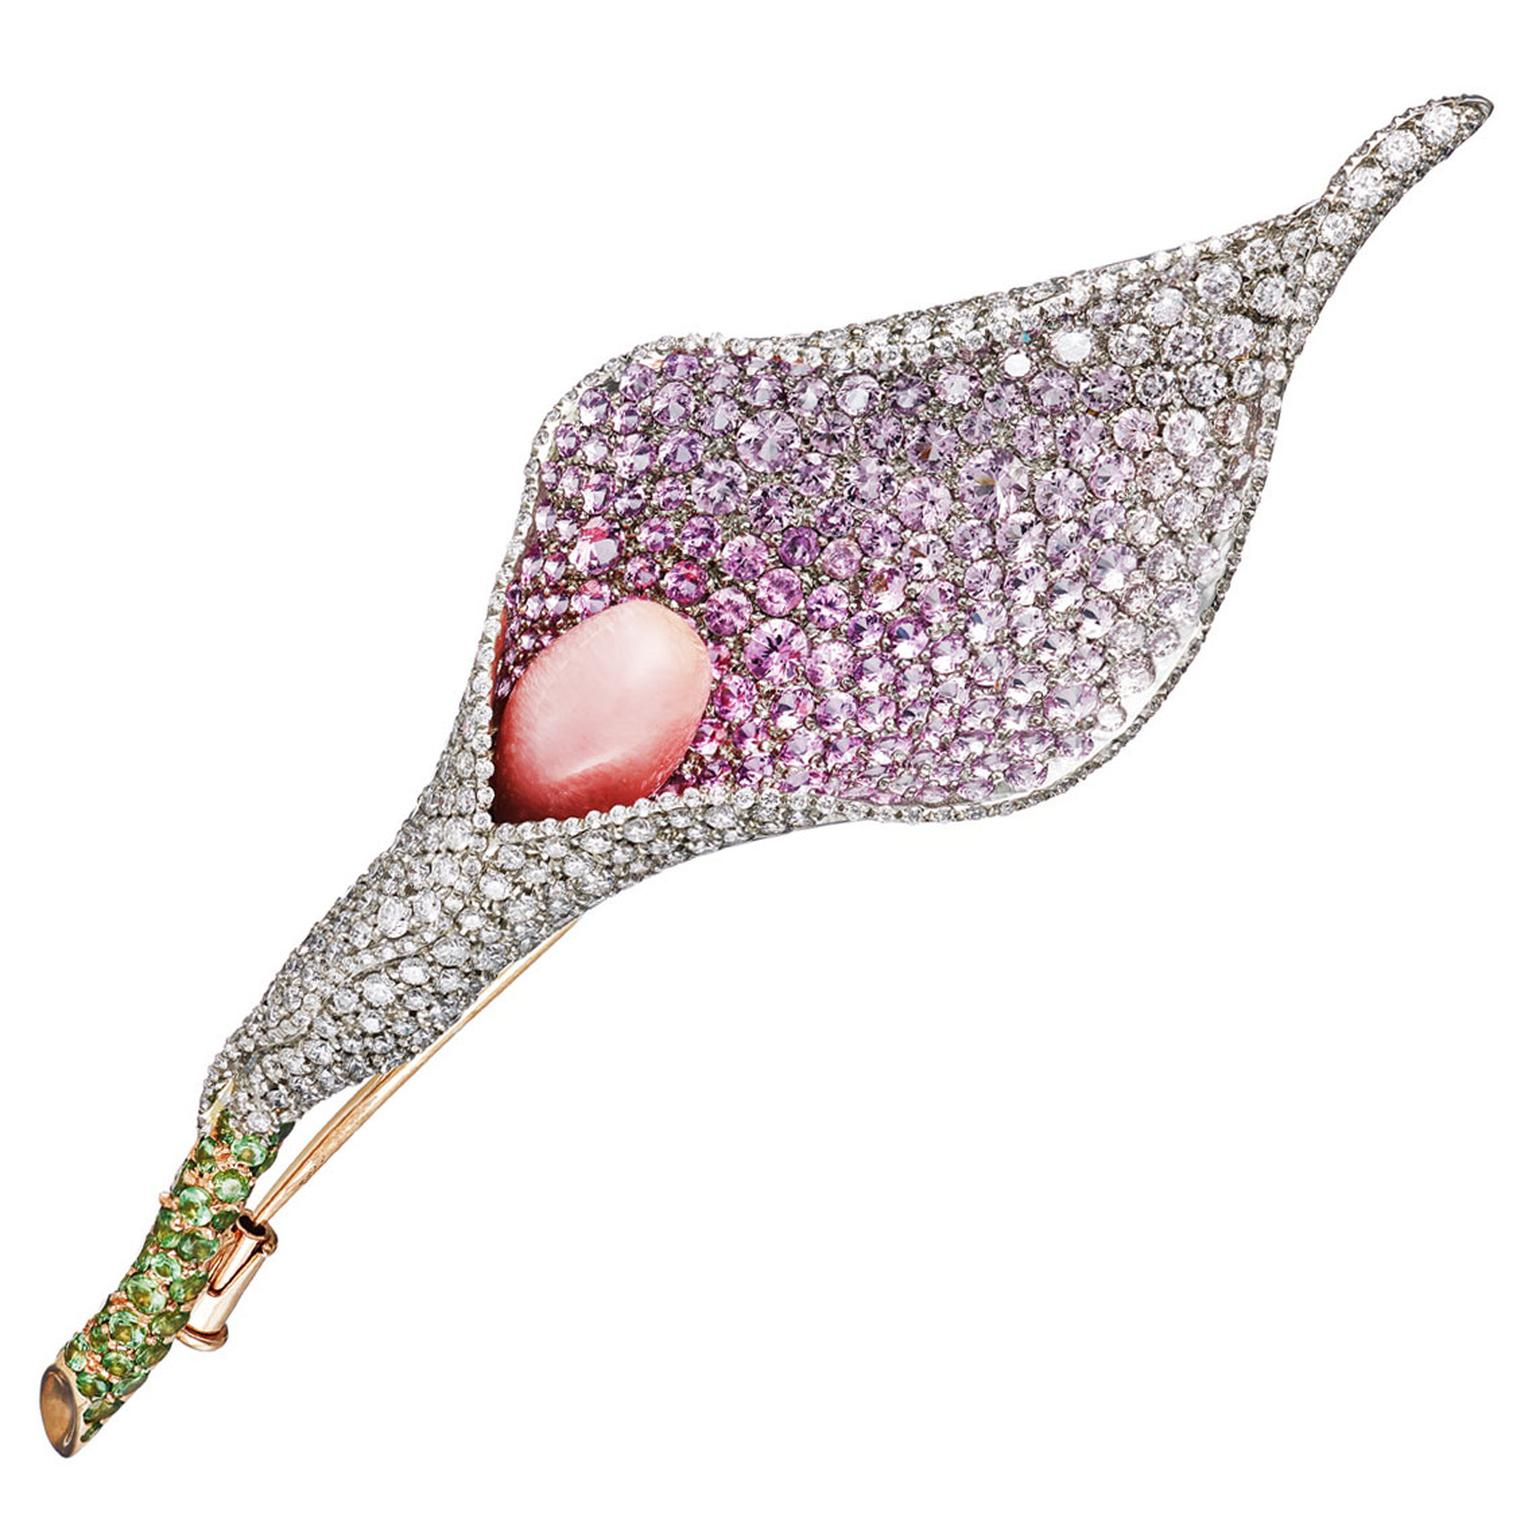 AAENEA-Conch-Brooch-Callas-Conch-Pearl